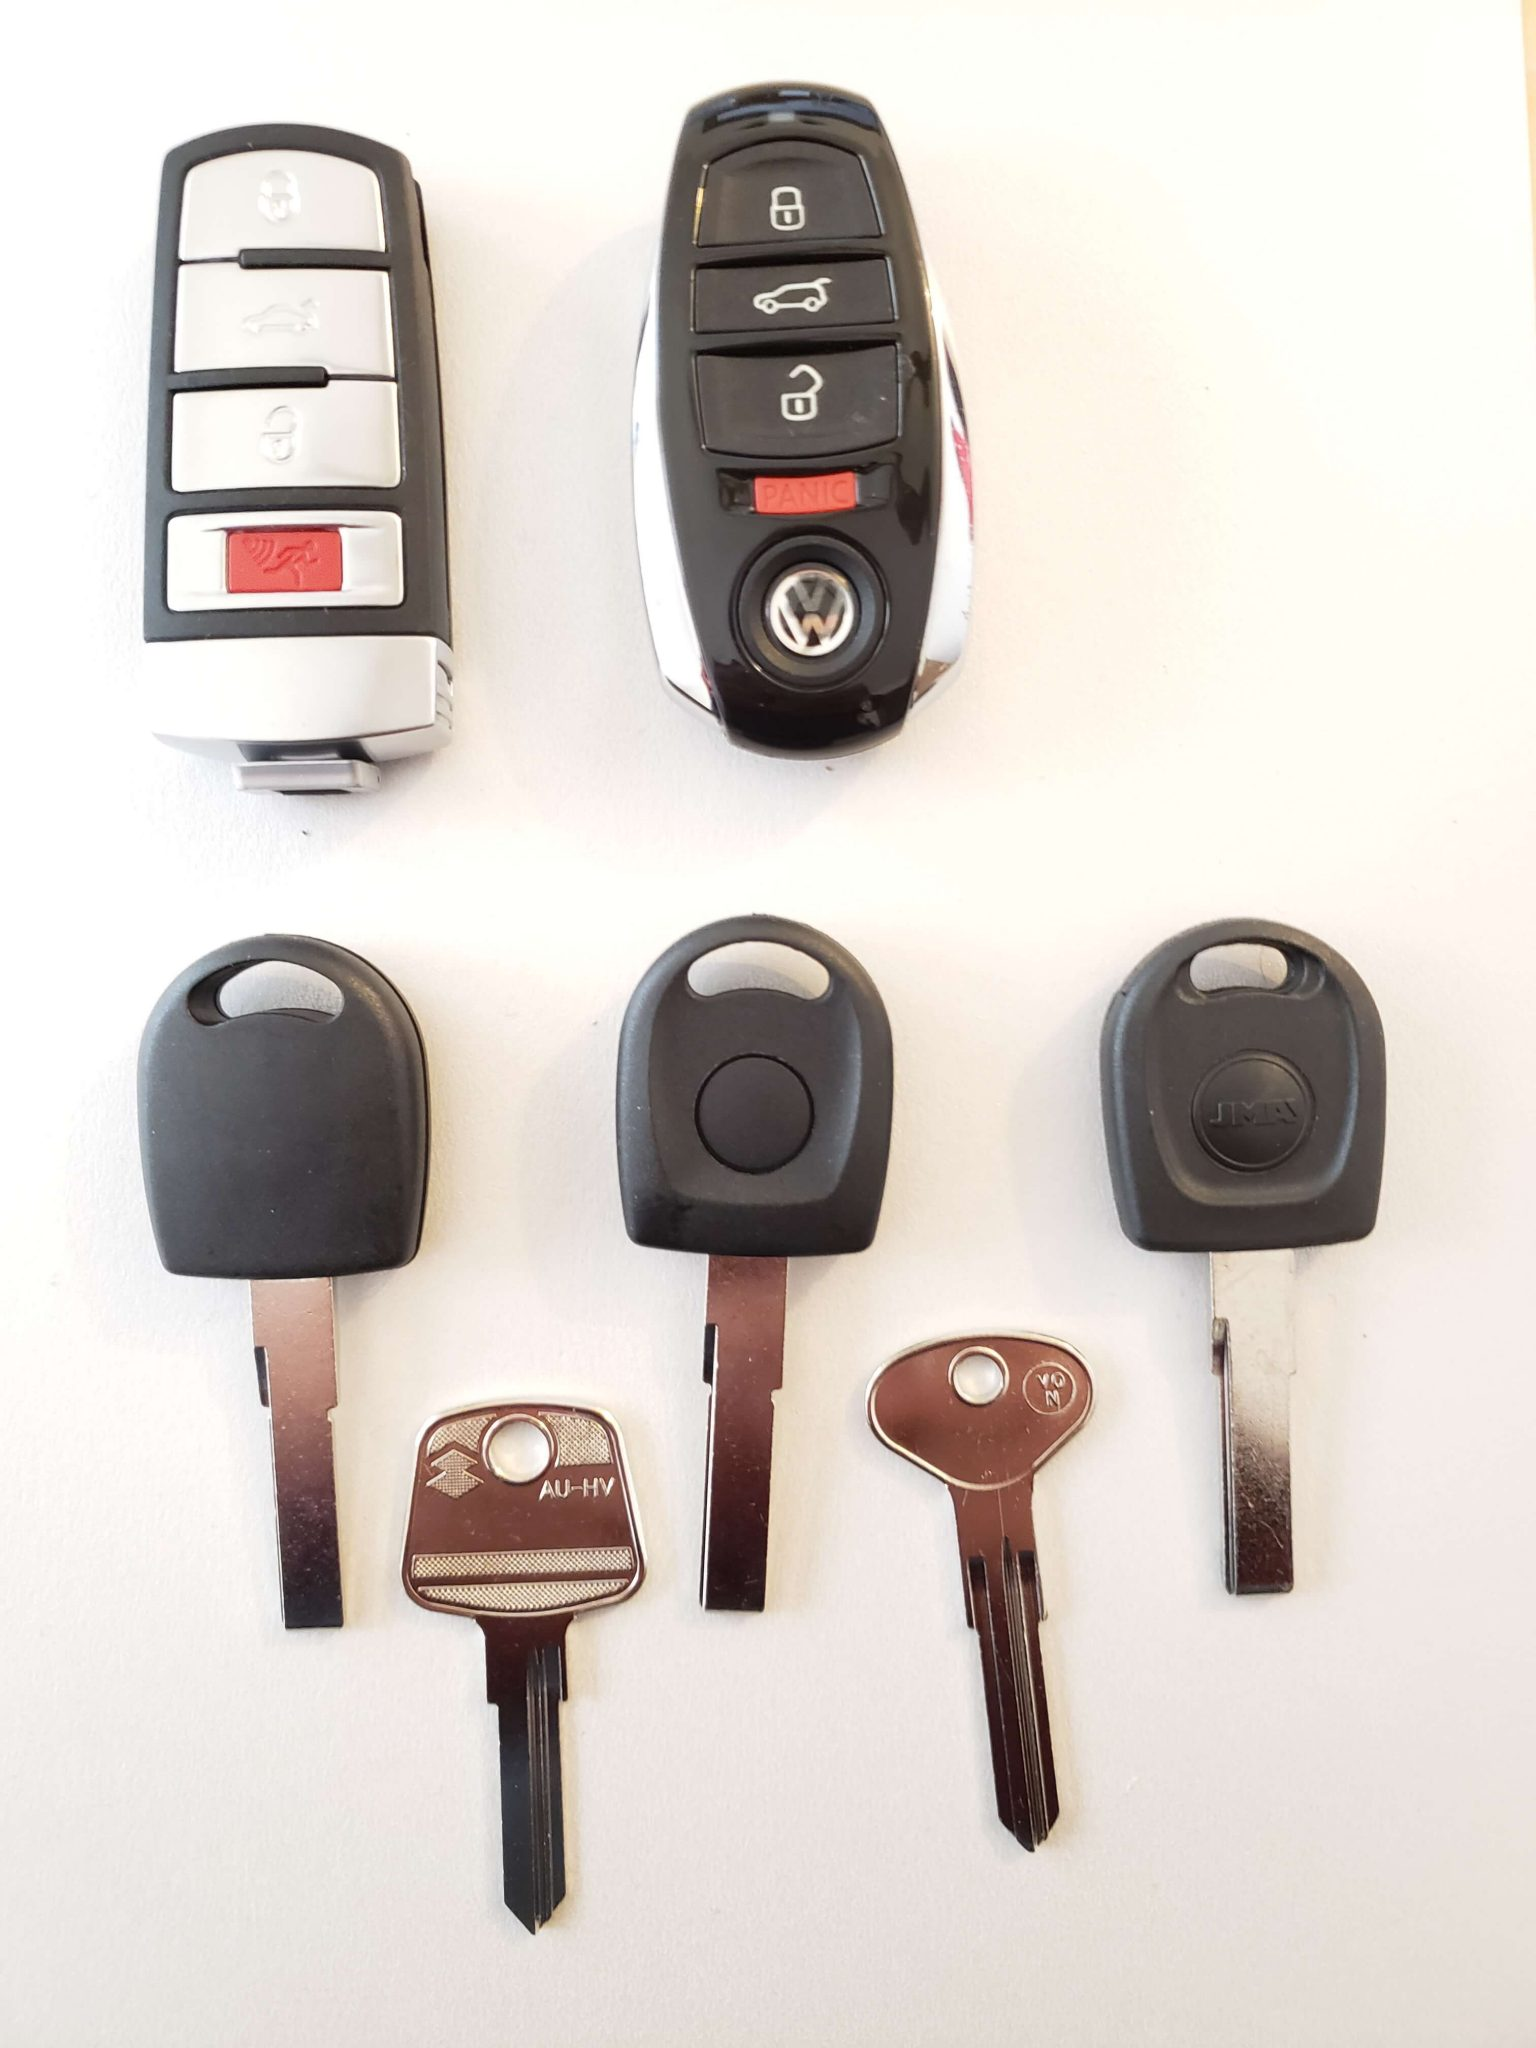 Volkswagen Jetta Replacement Keys What To Do Options Cost More